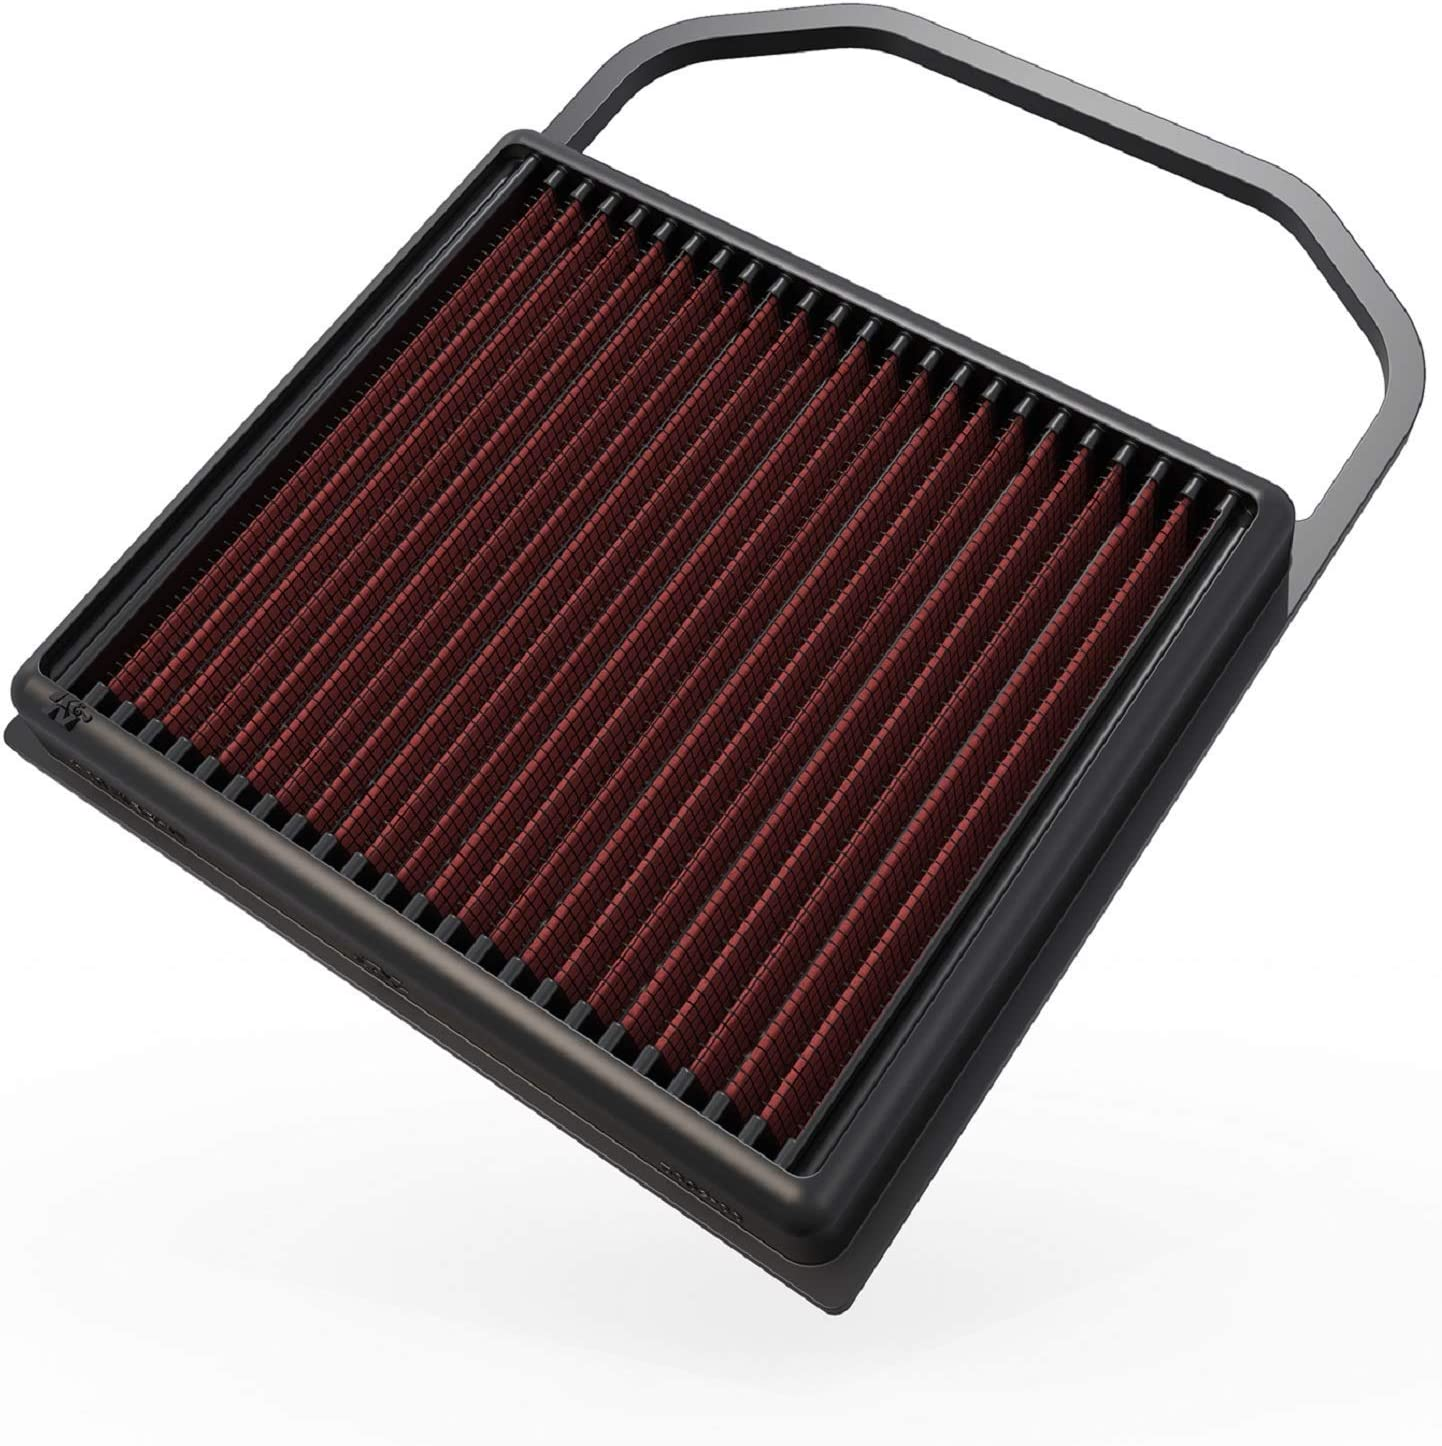 K&N Engine Air Filter: High Performance, Premium, Washable, Replacement Filter: 2014-2019 Mercedes V6 (C400, C43 AMG, C450 AMG, E450, GLC43AMG, GLE400, GLS 400 and other select models), 33-5032